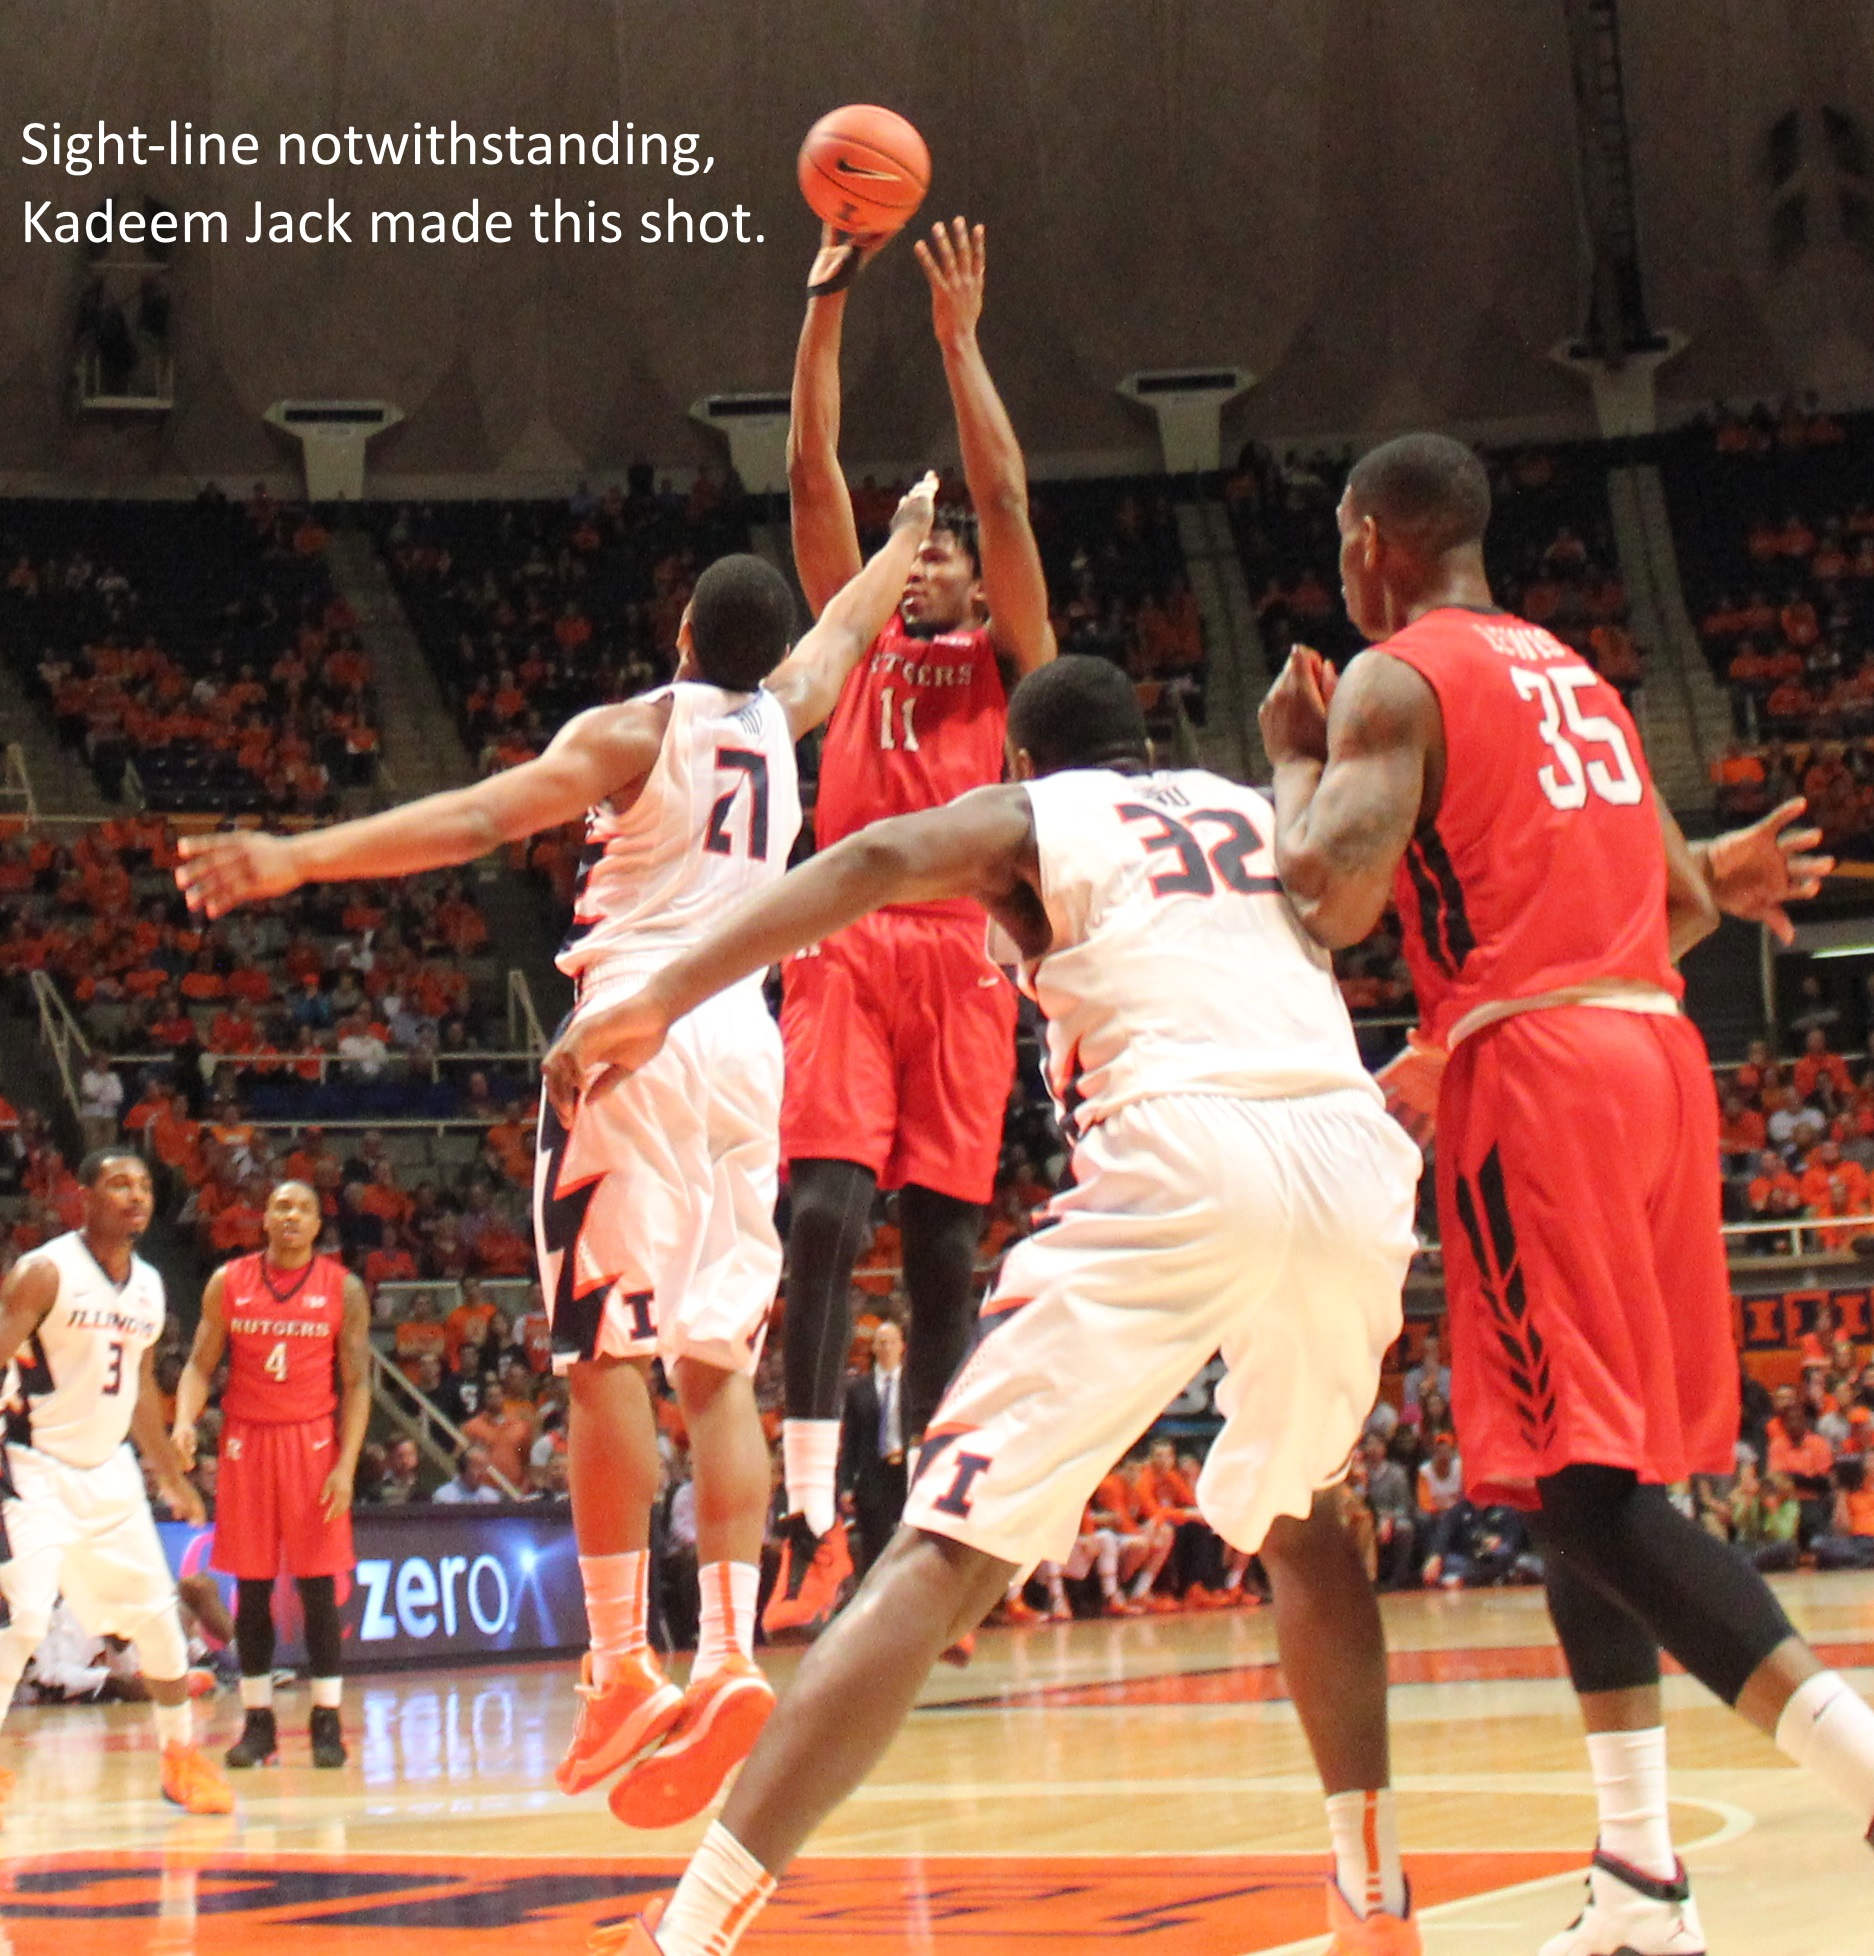 sight line notwithstanding kadeem jack made this shot